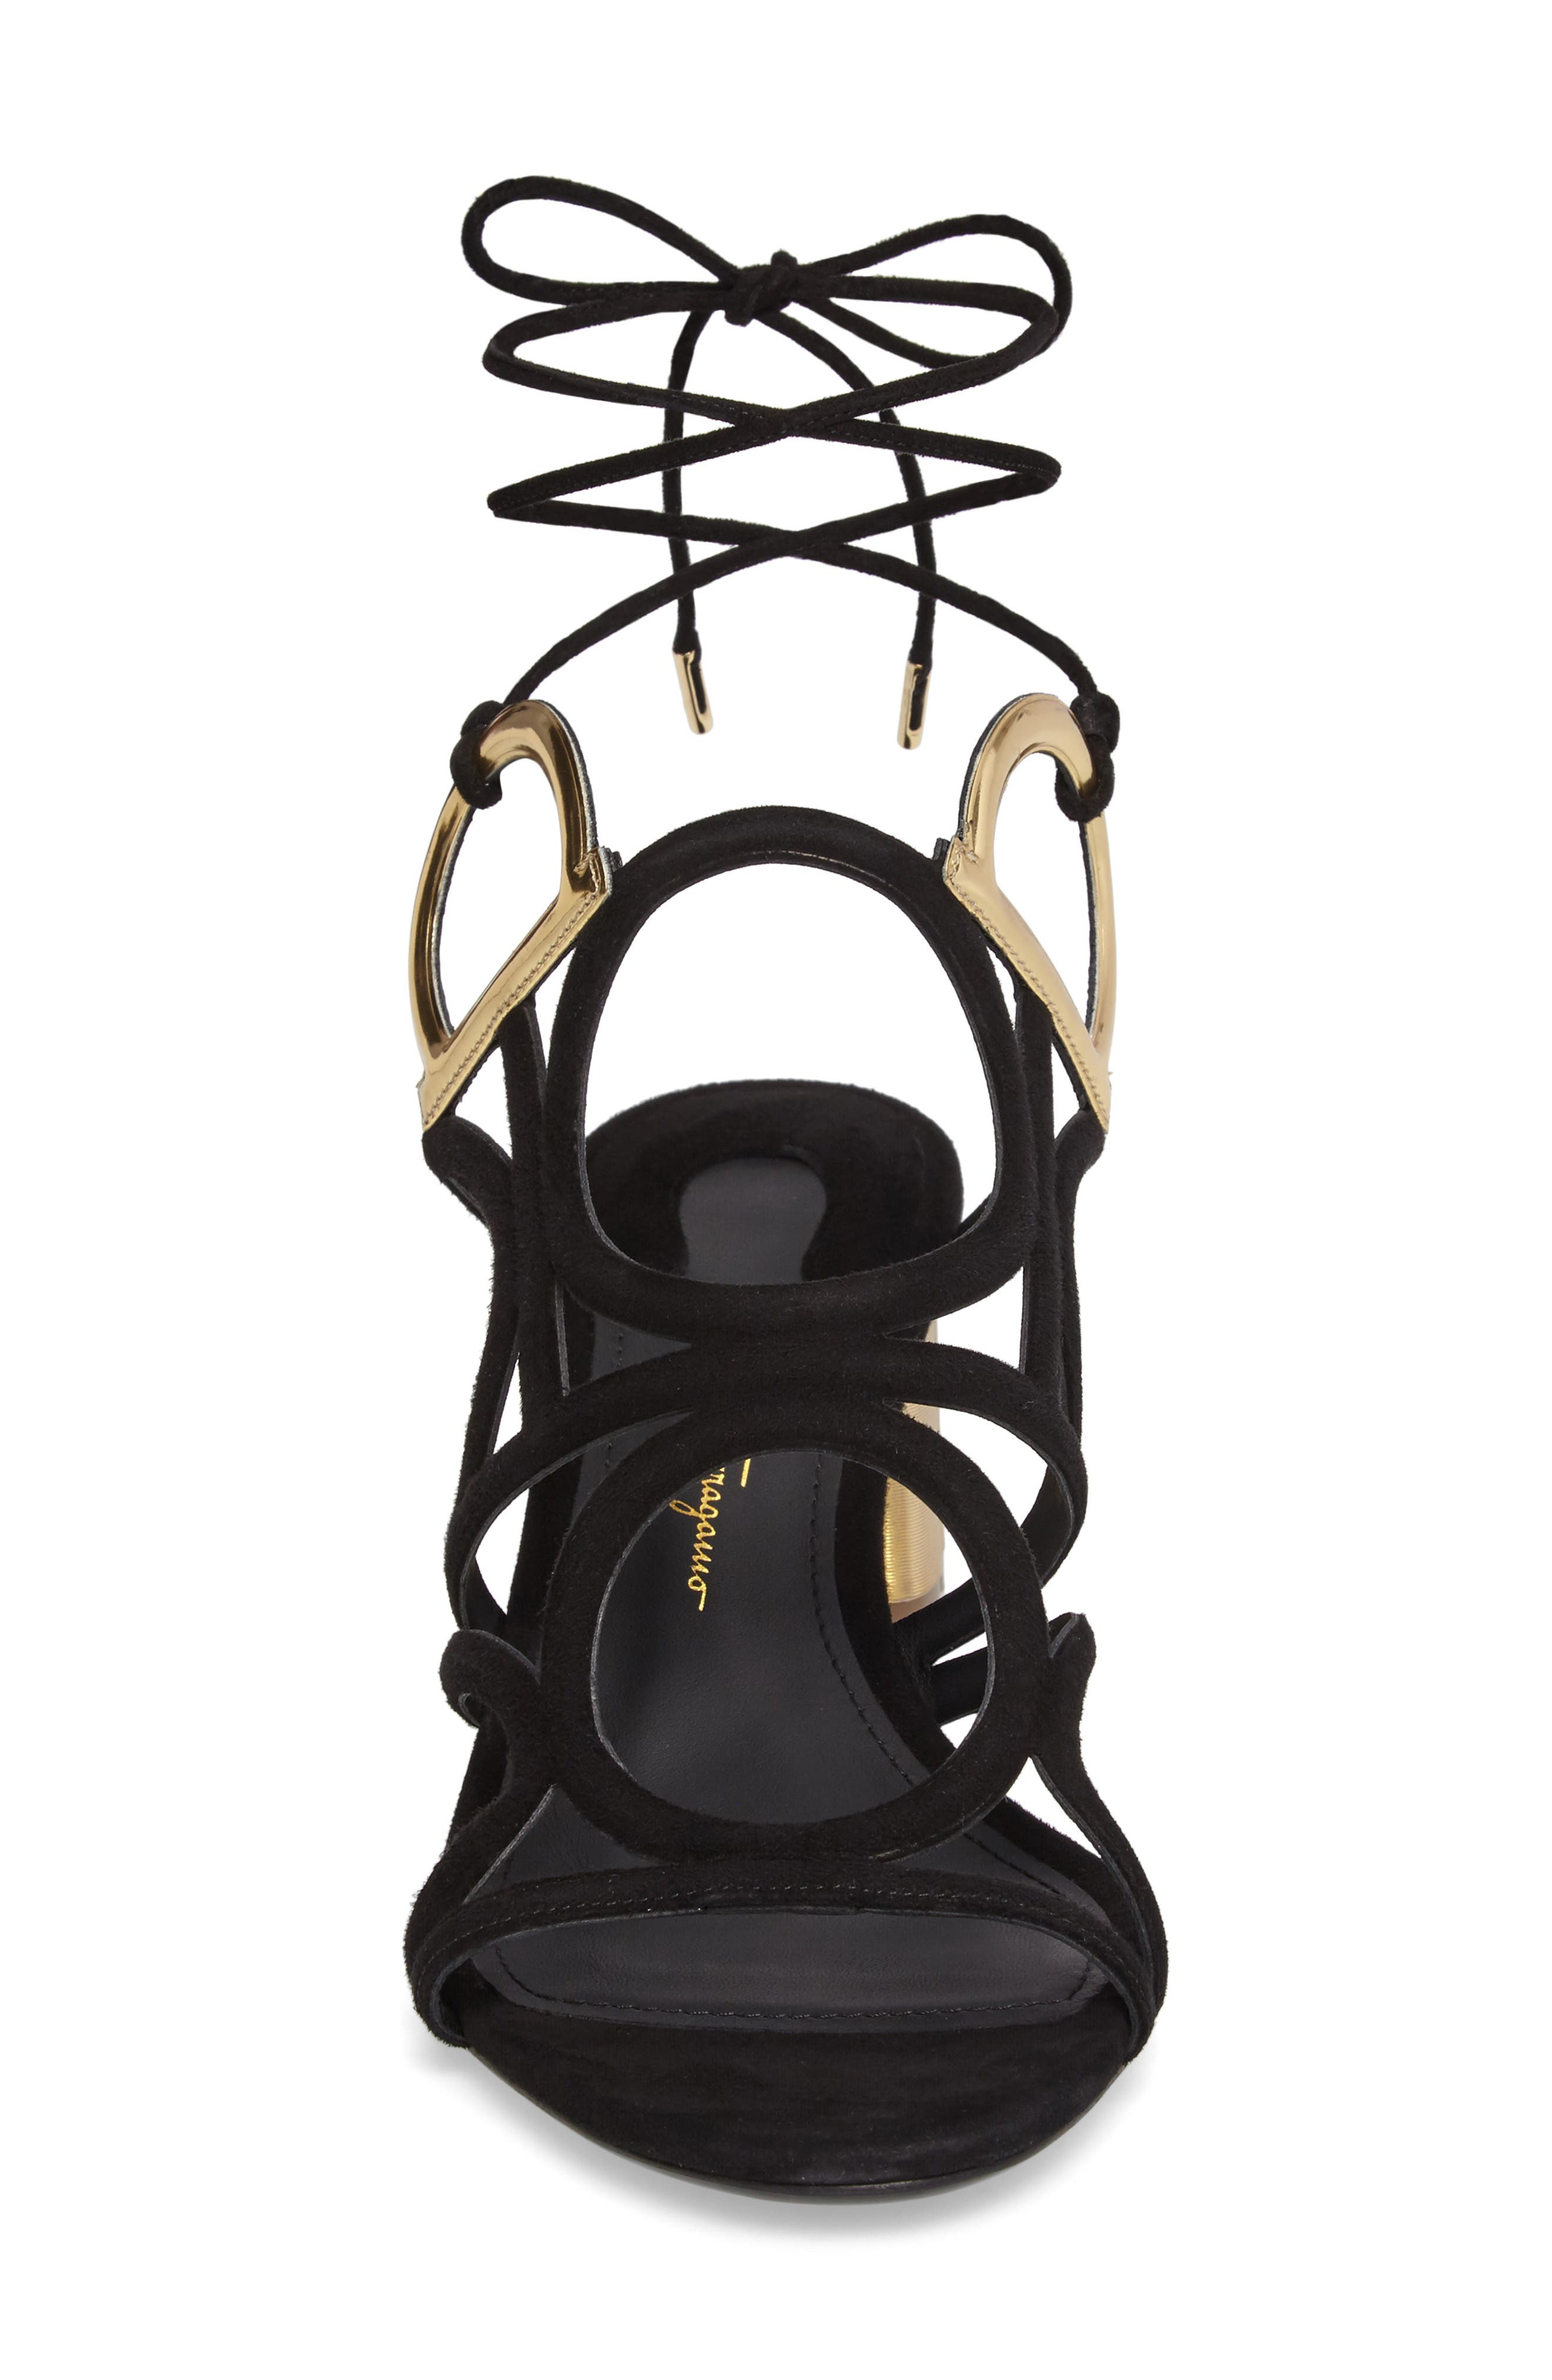 Vinci Lace-Up Block Heel Sandal,                             Alternate thumbnail 4, color,                             BLACK SUEDE